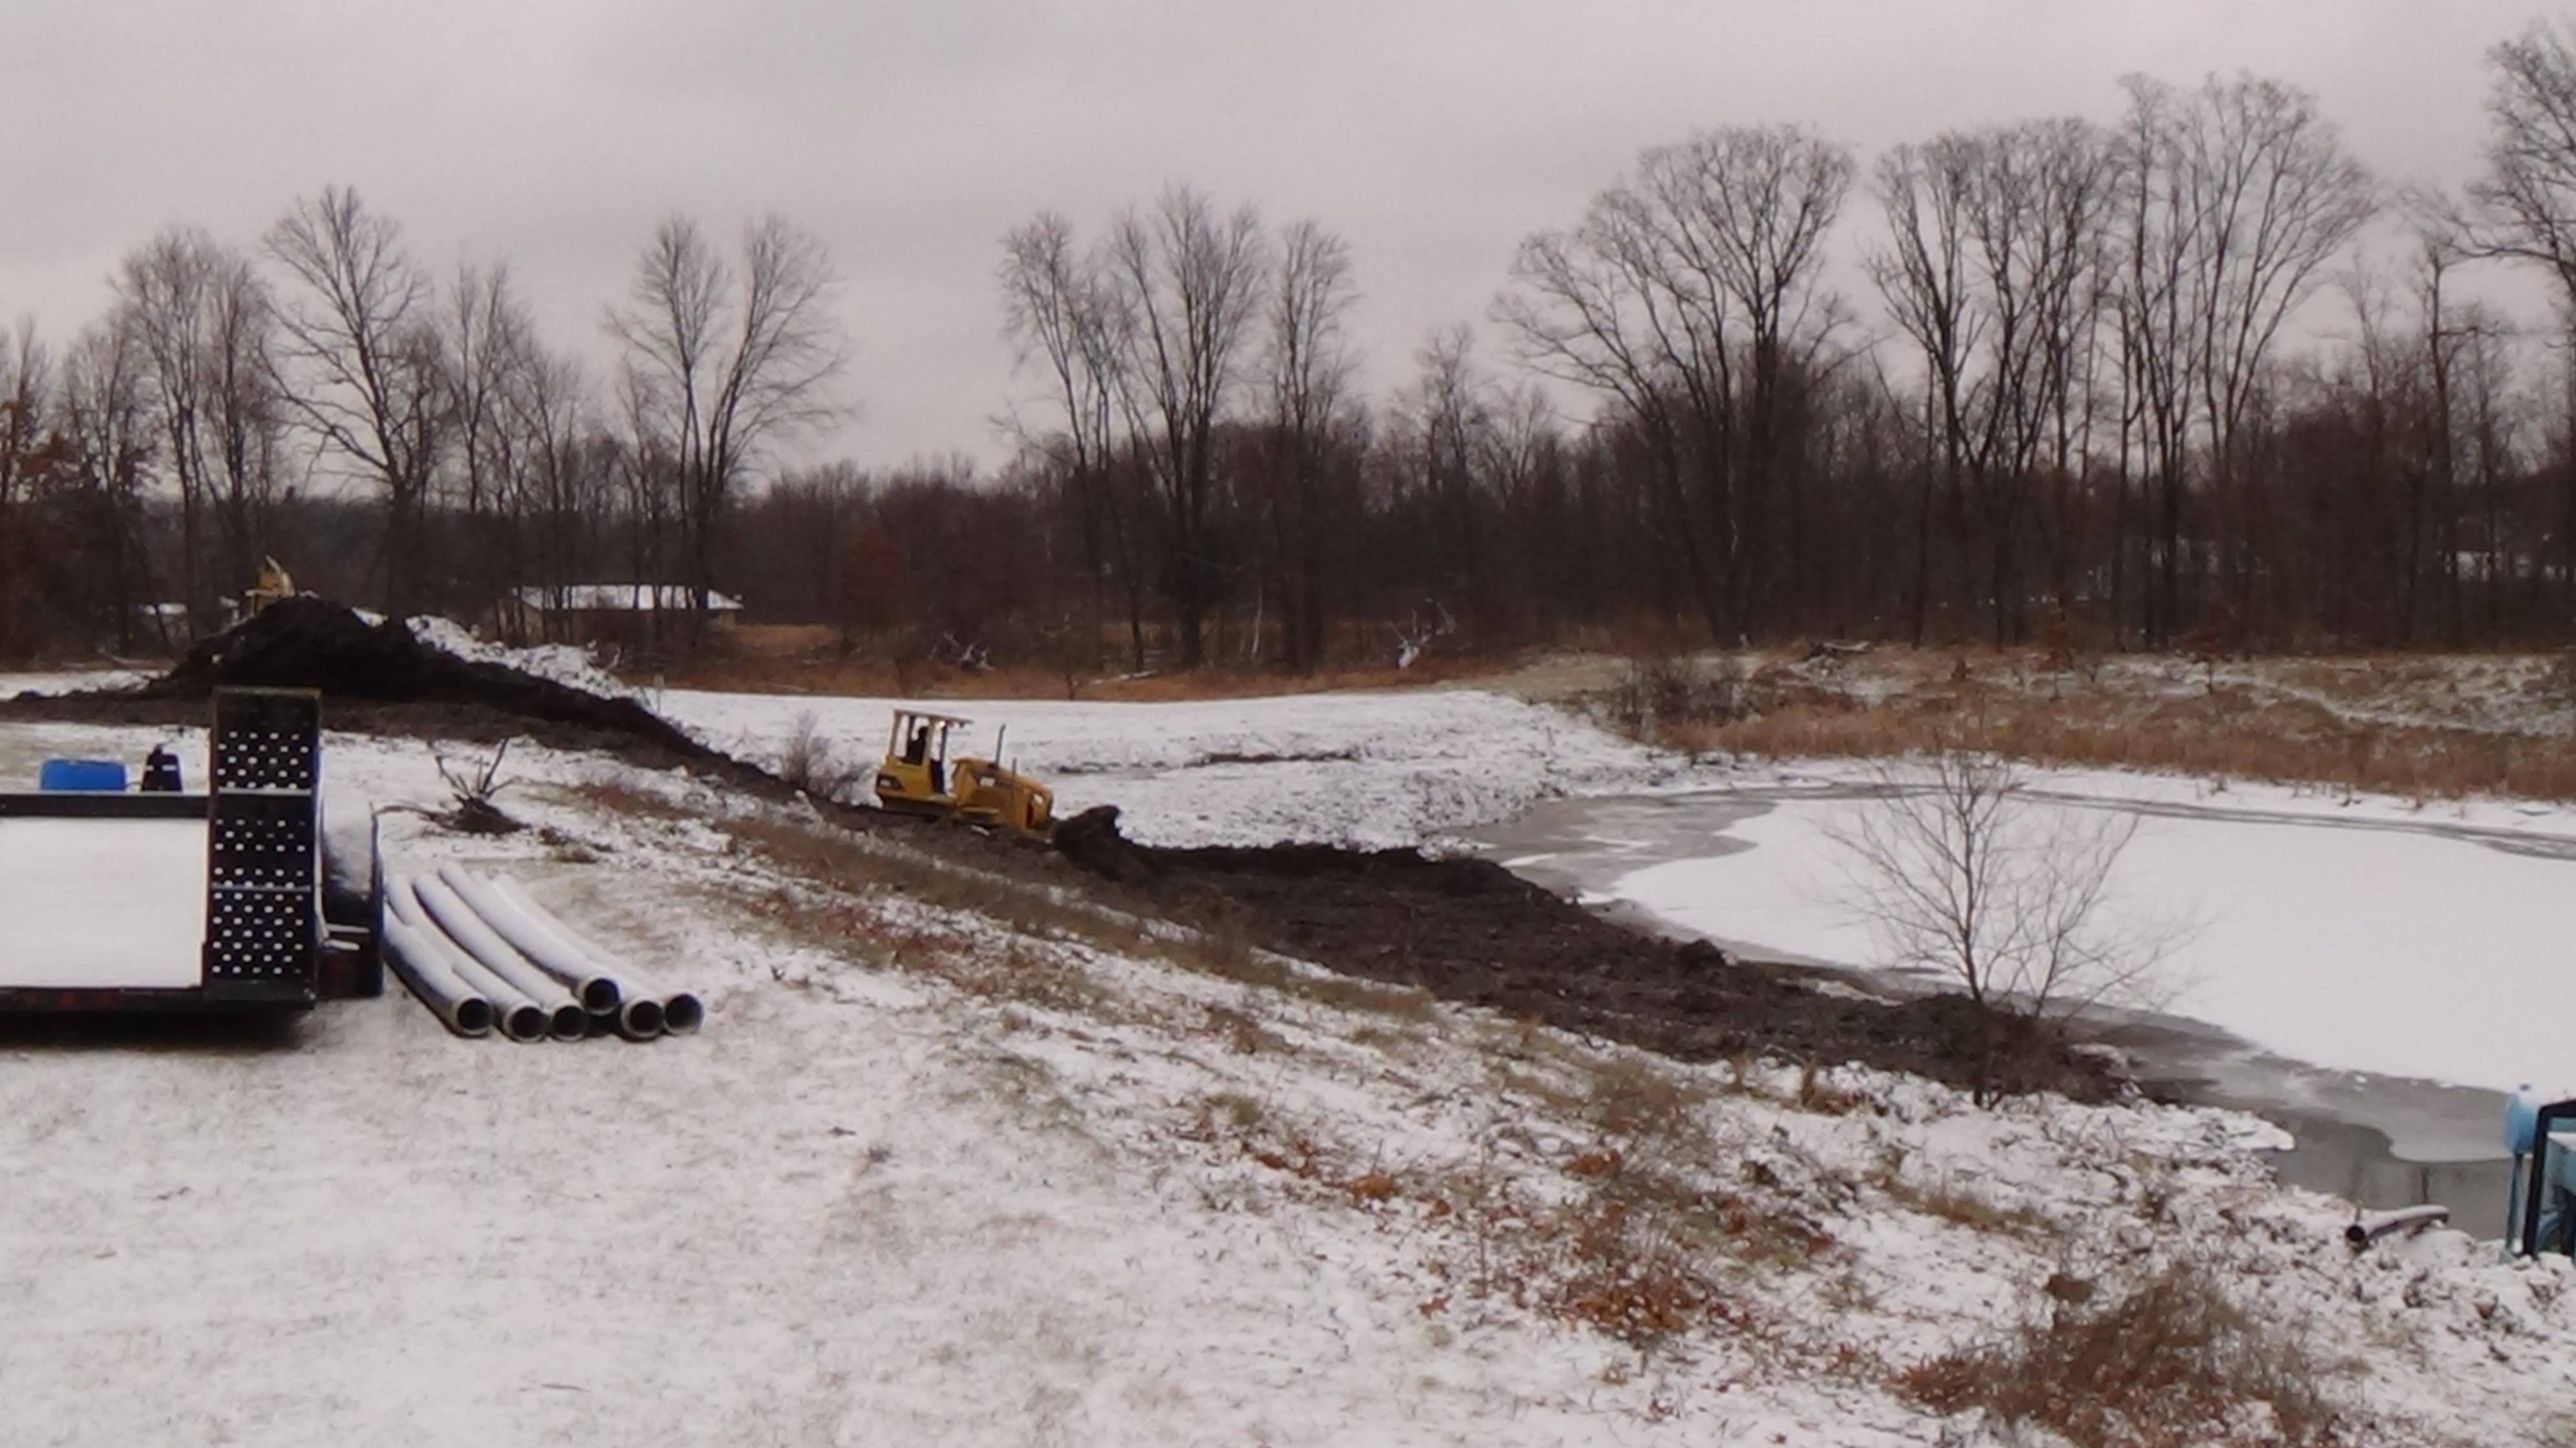 Wetland_Mitigation_Michigan_Hartland_Michigan-2.jpg